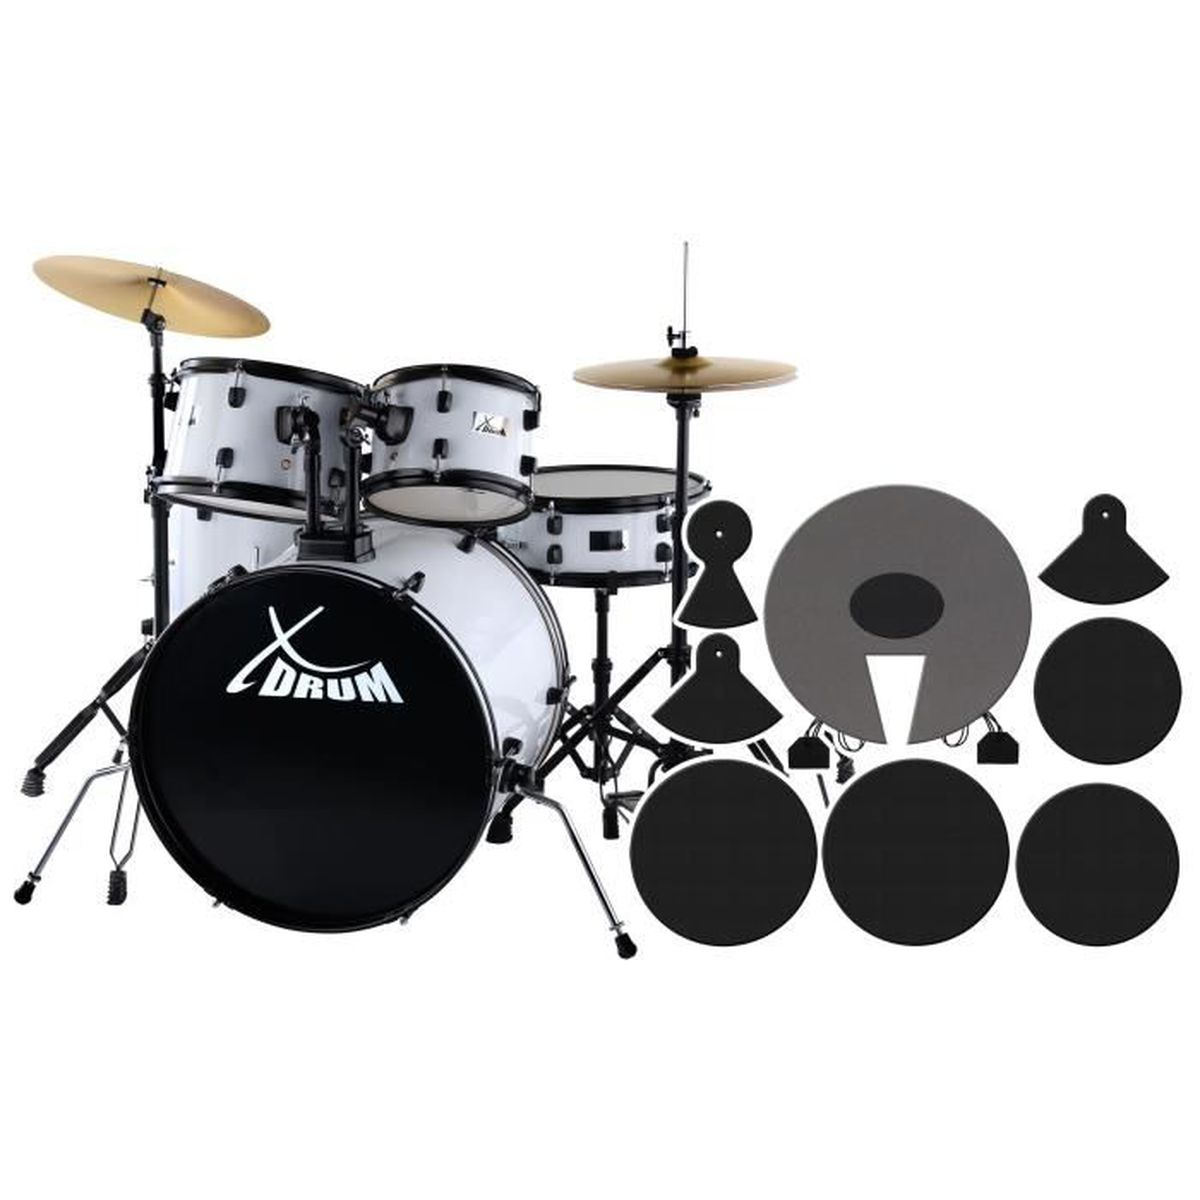 xdrum rookie 22 pas cher achat vente batterie cdiscount. Black Bedroom Furniture Sets. Home Design Ideas